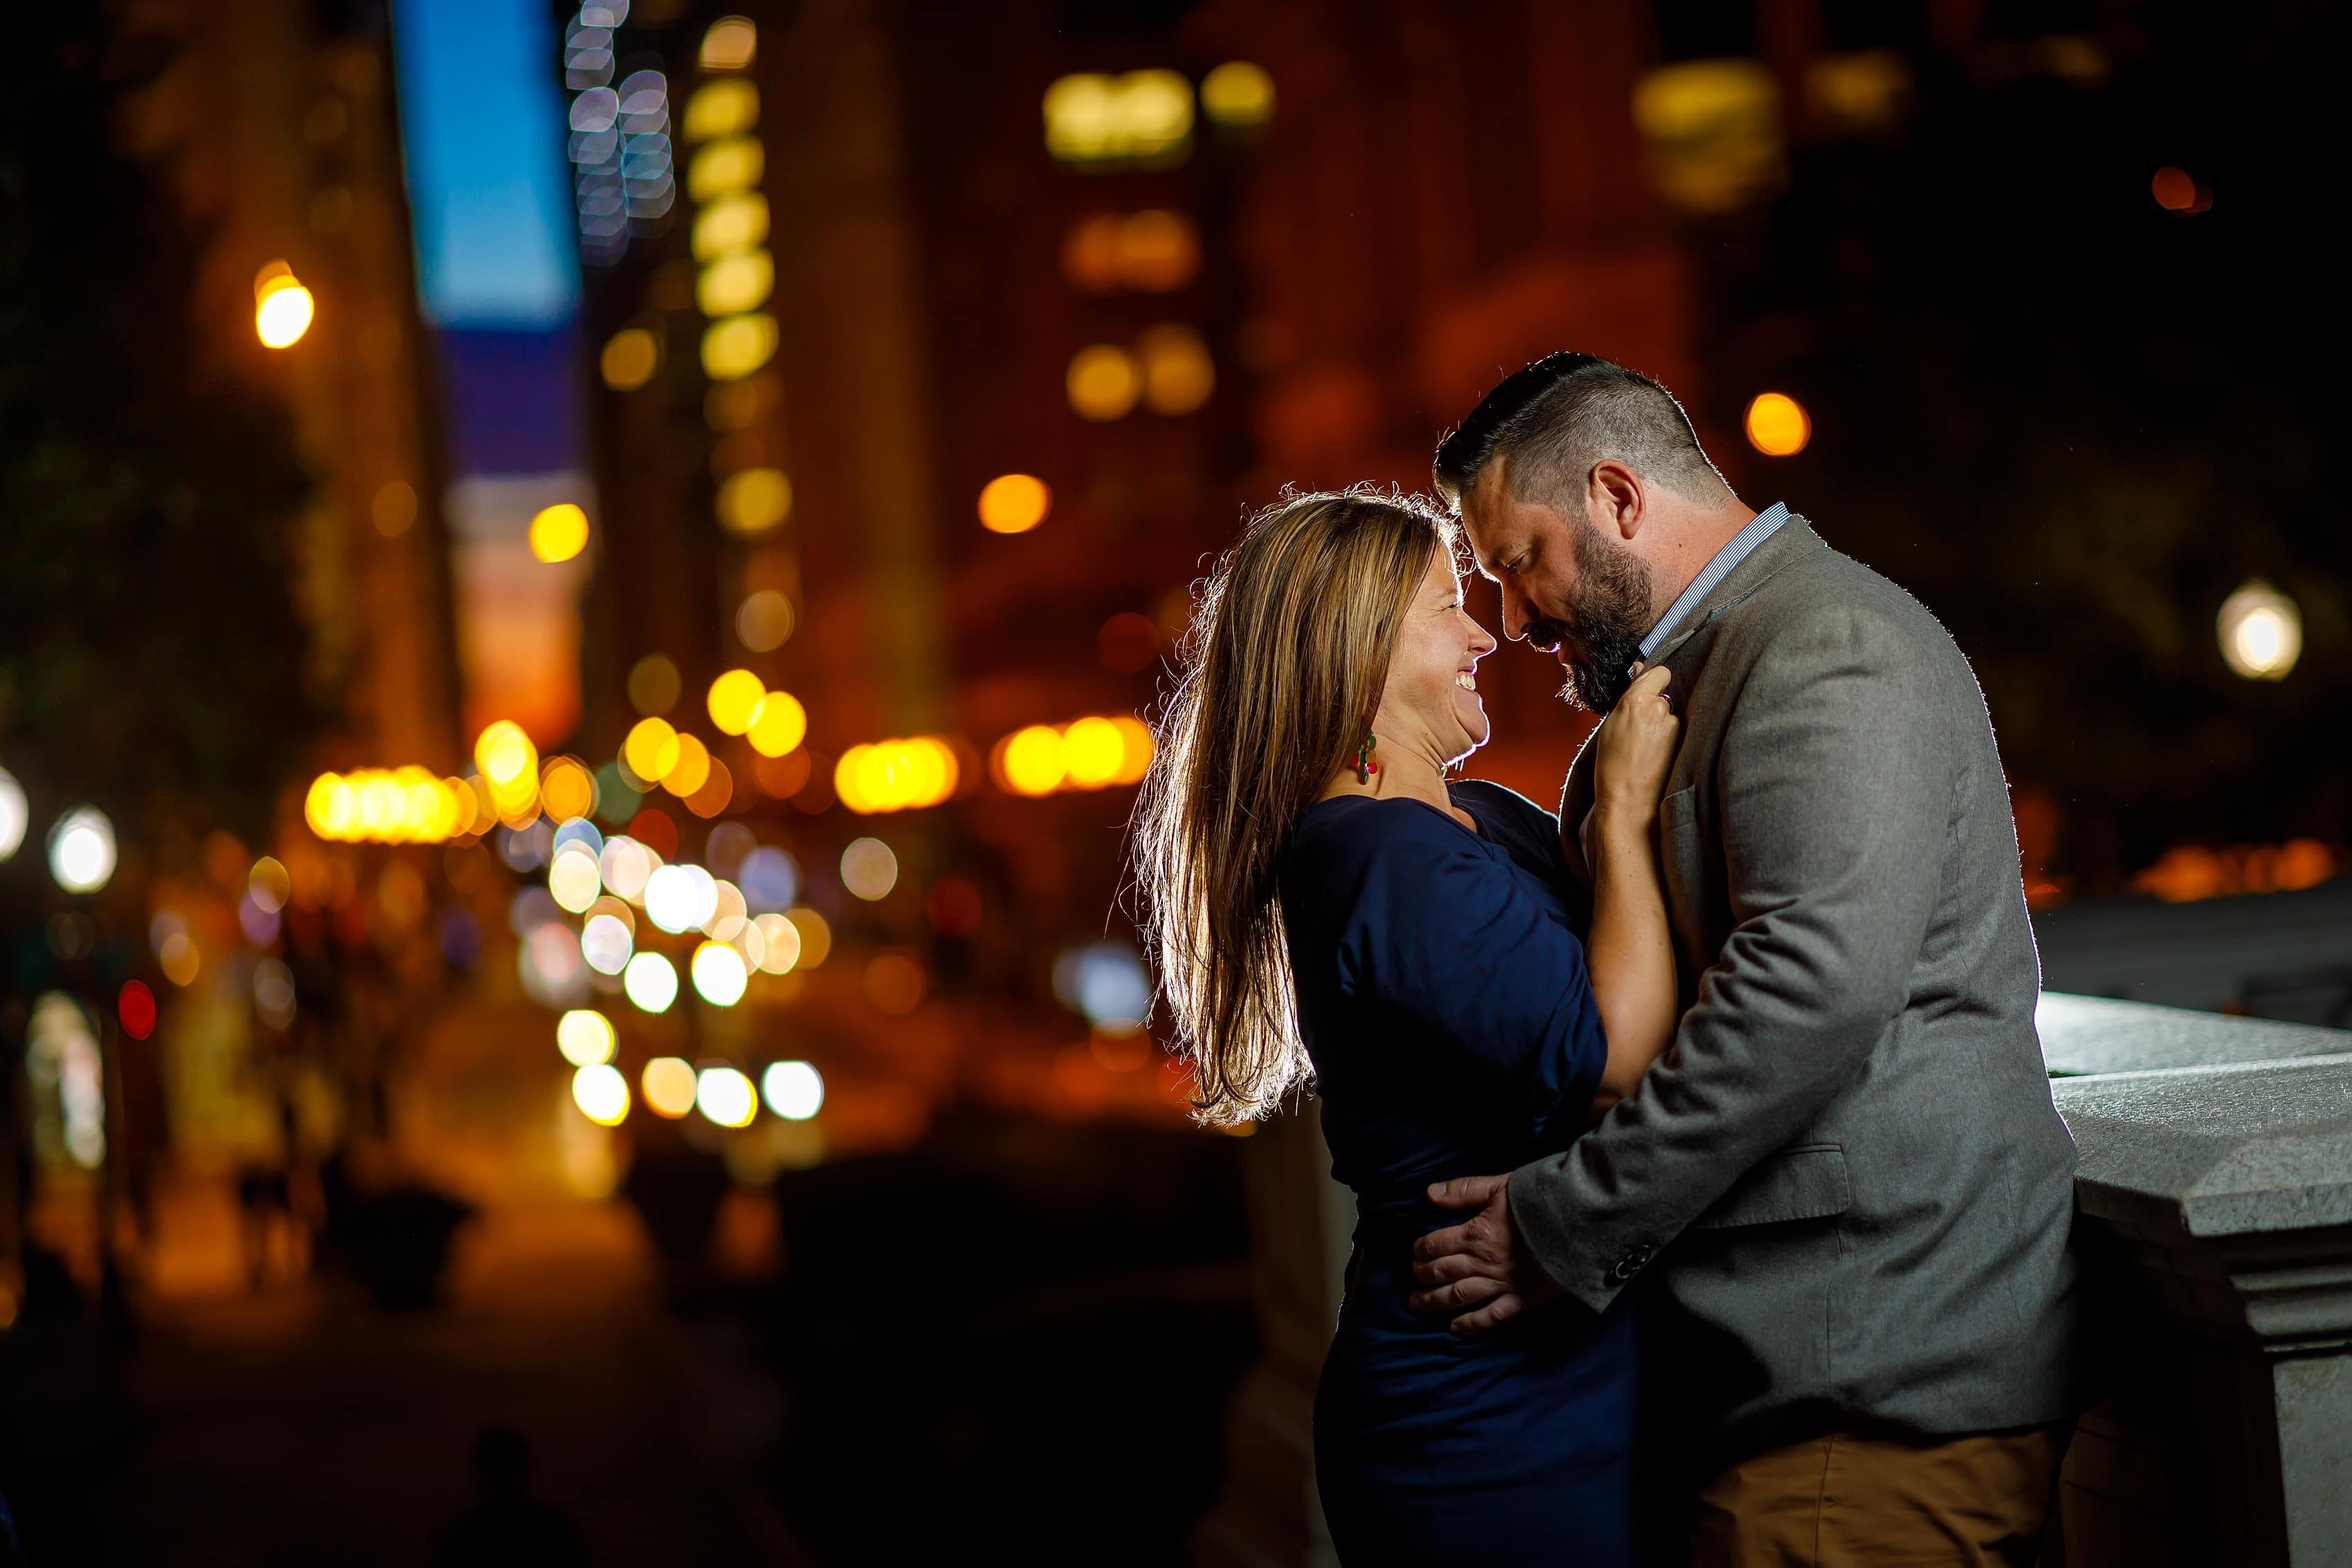 couple laughs during night engagement photo at Millennium Park in Chicago